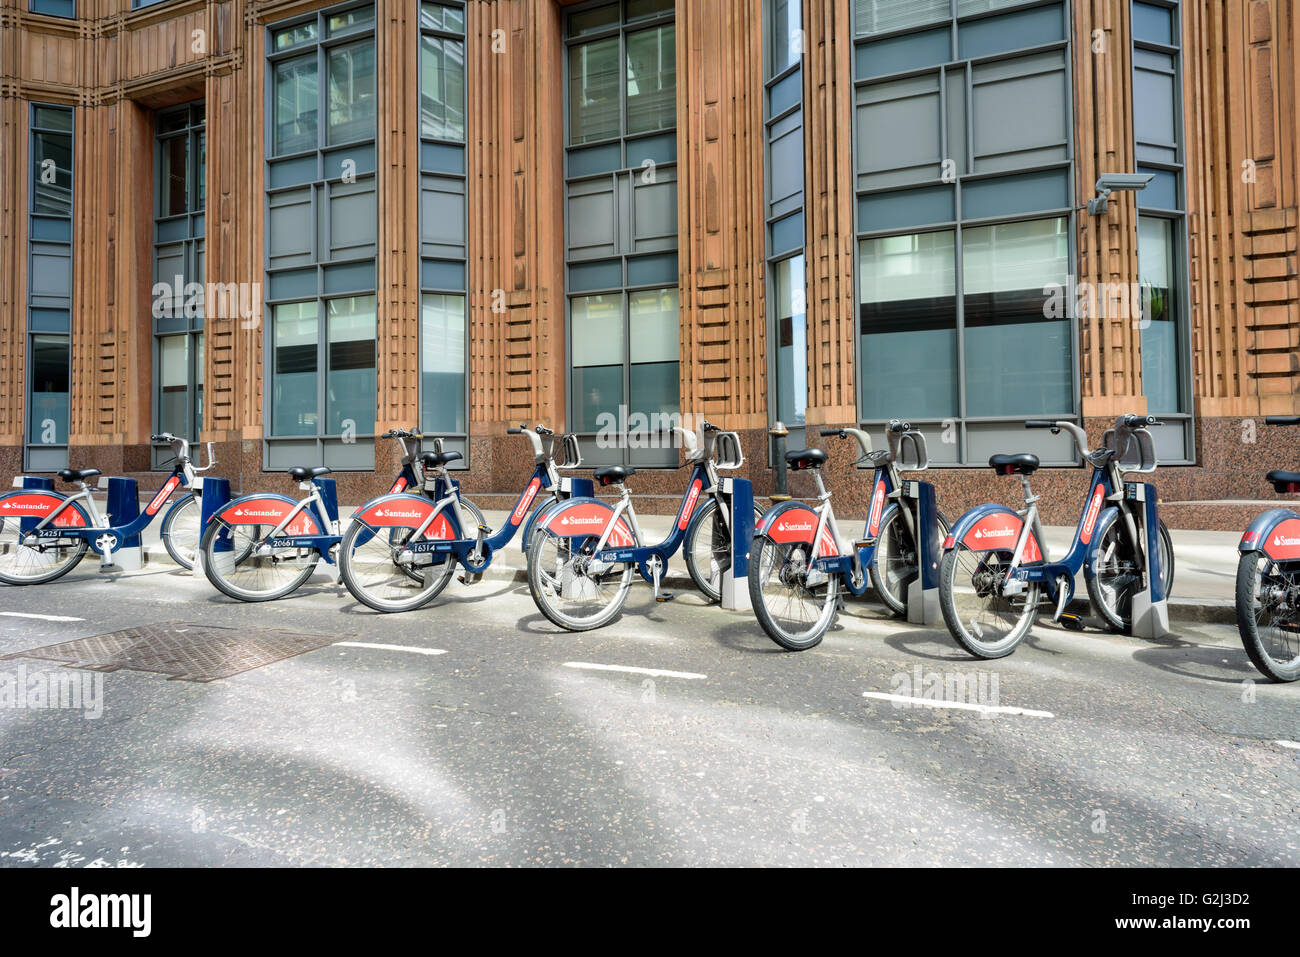 Hire bikes for traveling around the city of London sponsored by Santander offering cheap environmentally friendly - Stock Image